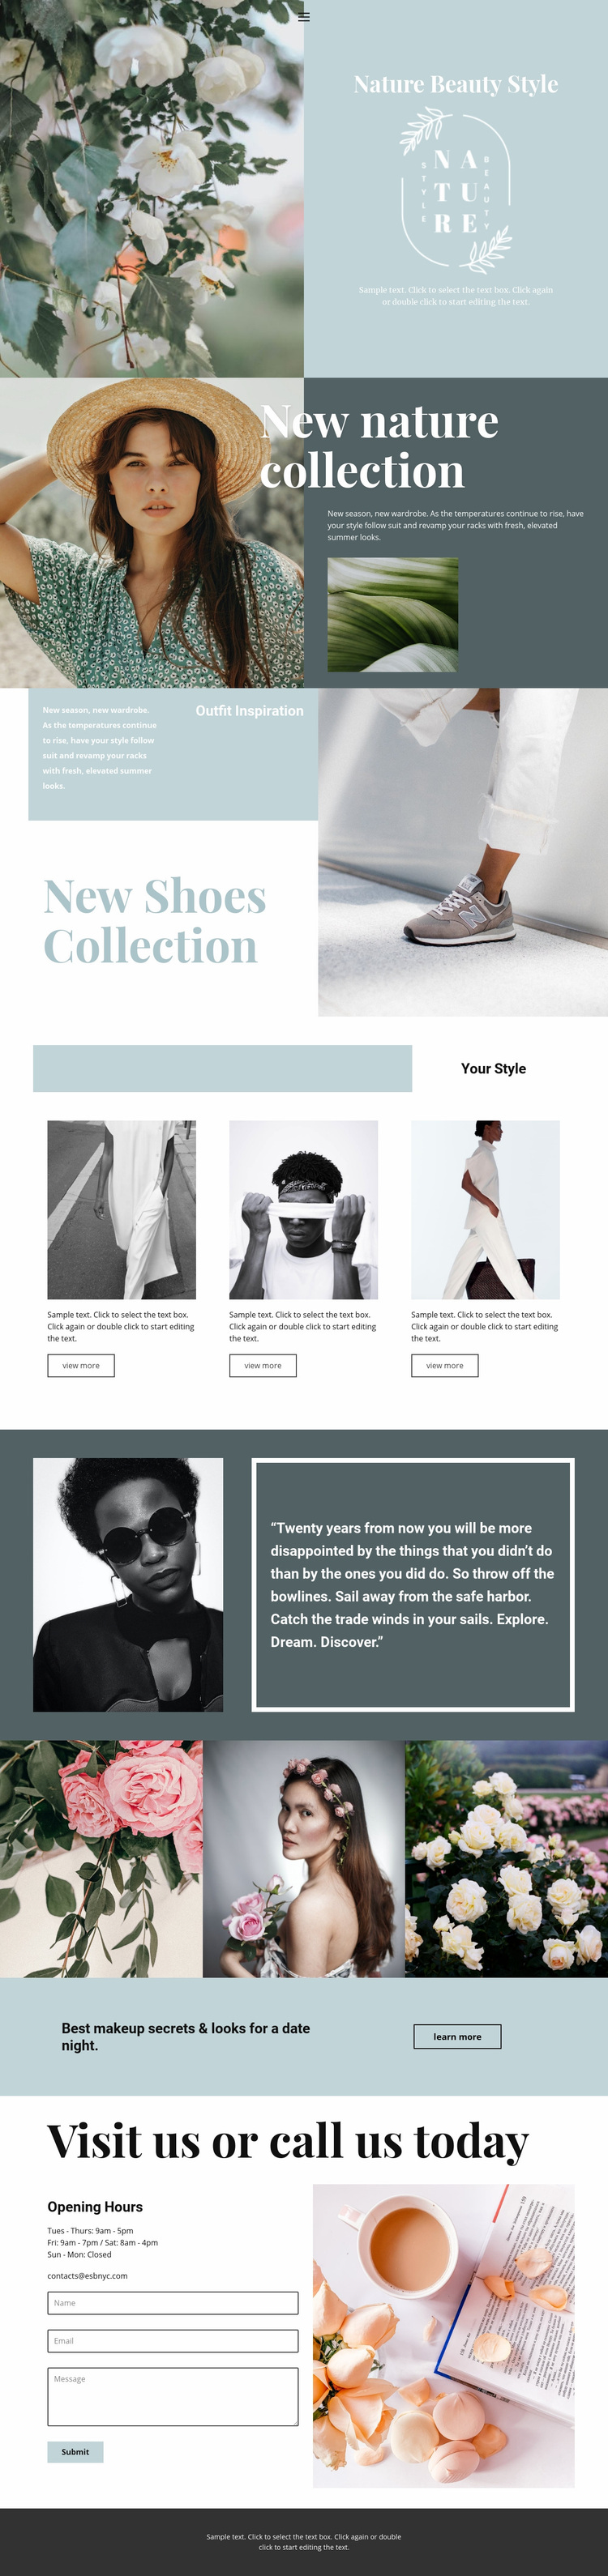 Nature collection Web Page Designer